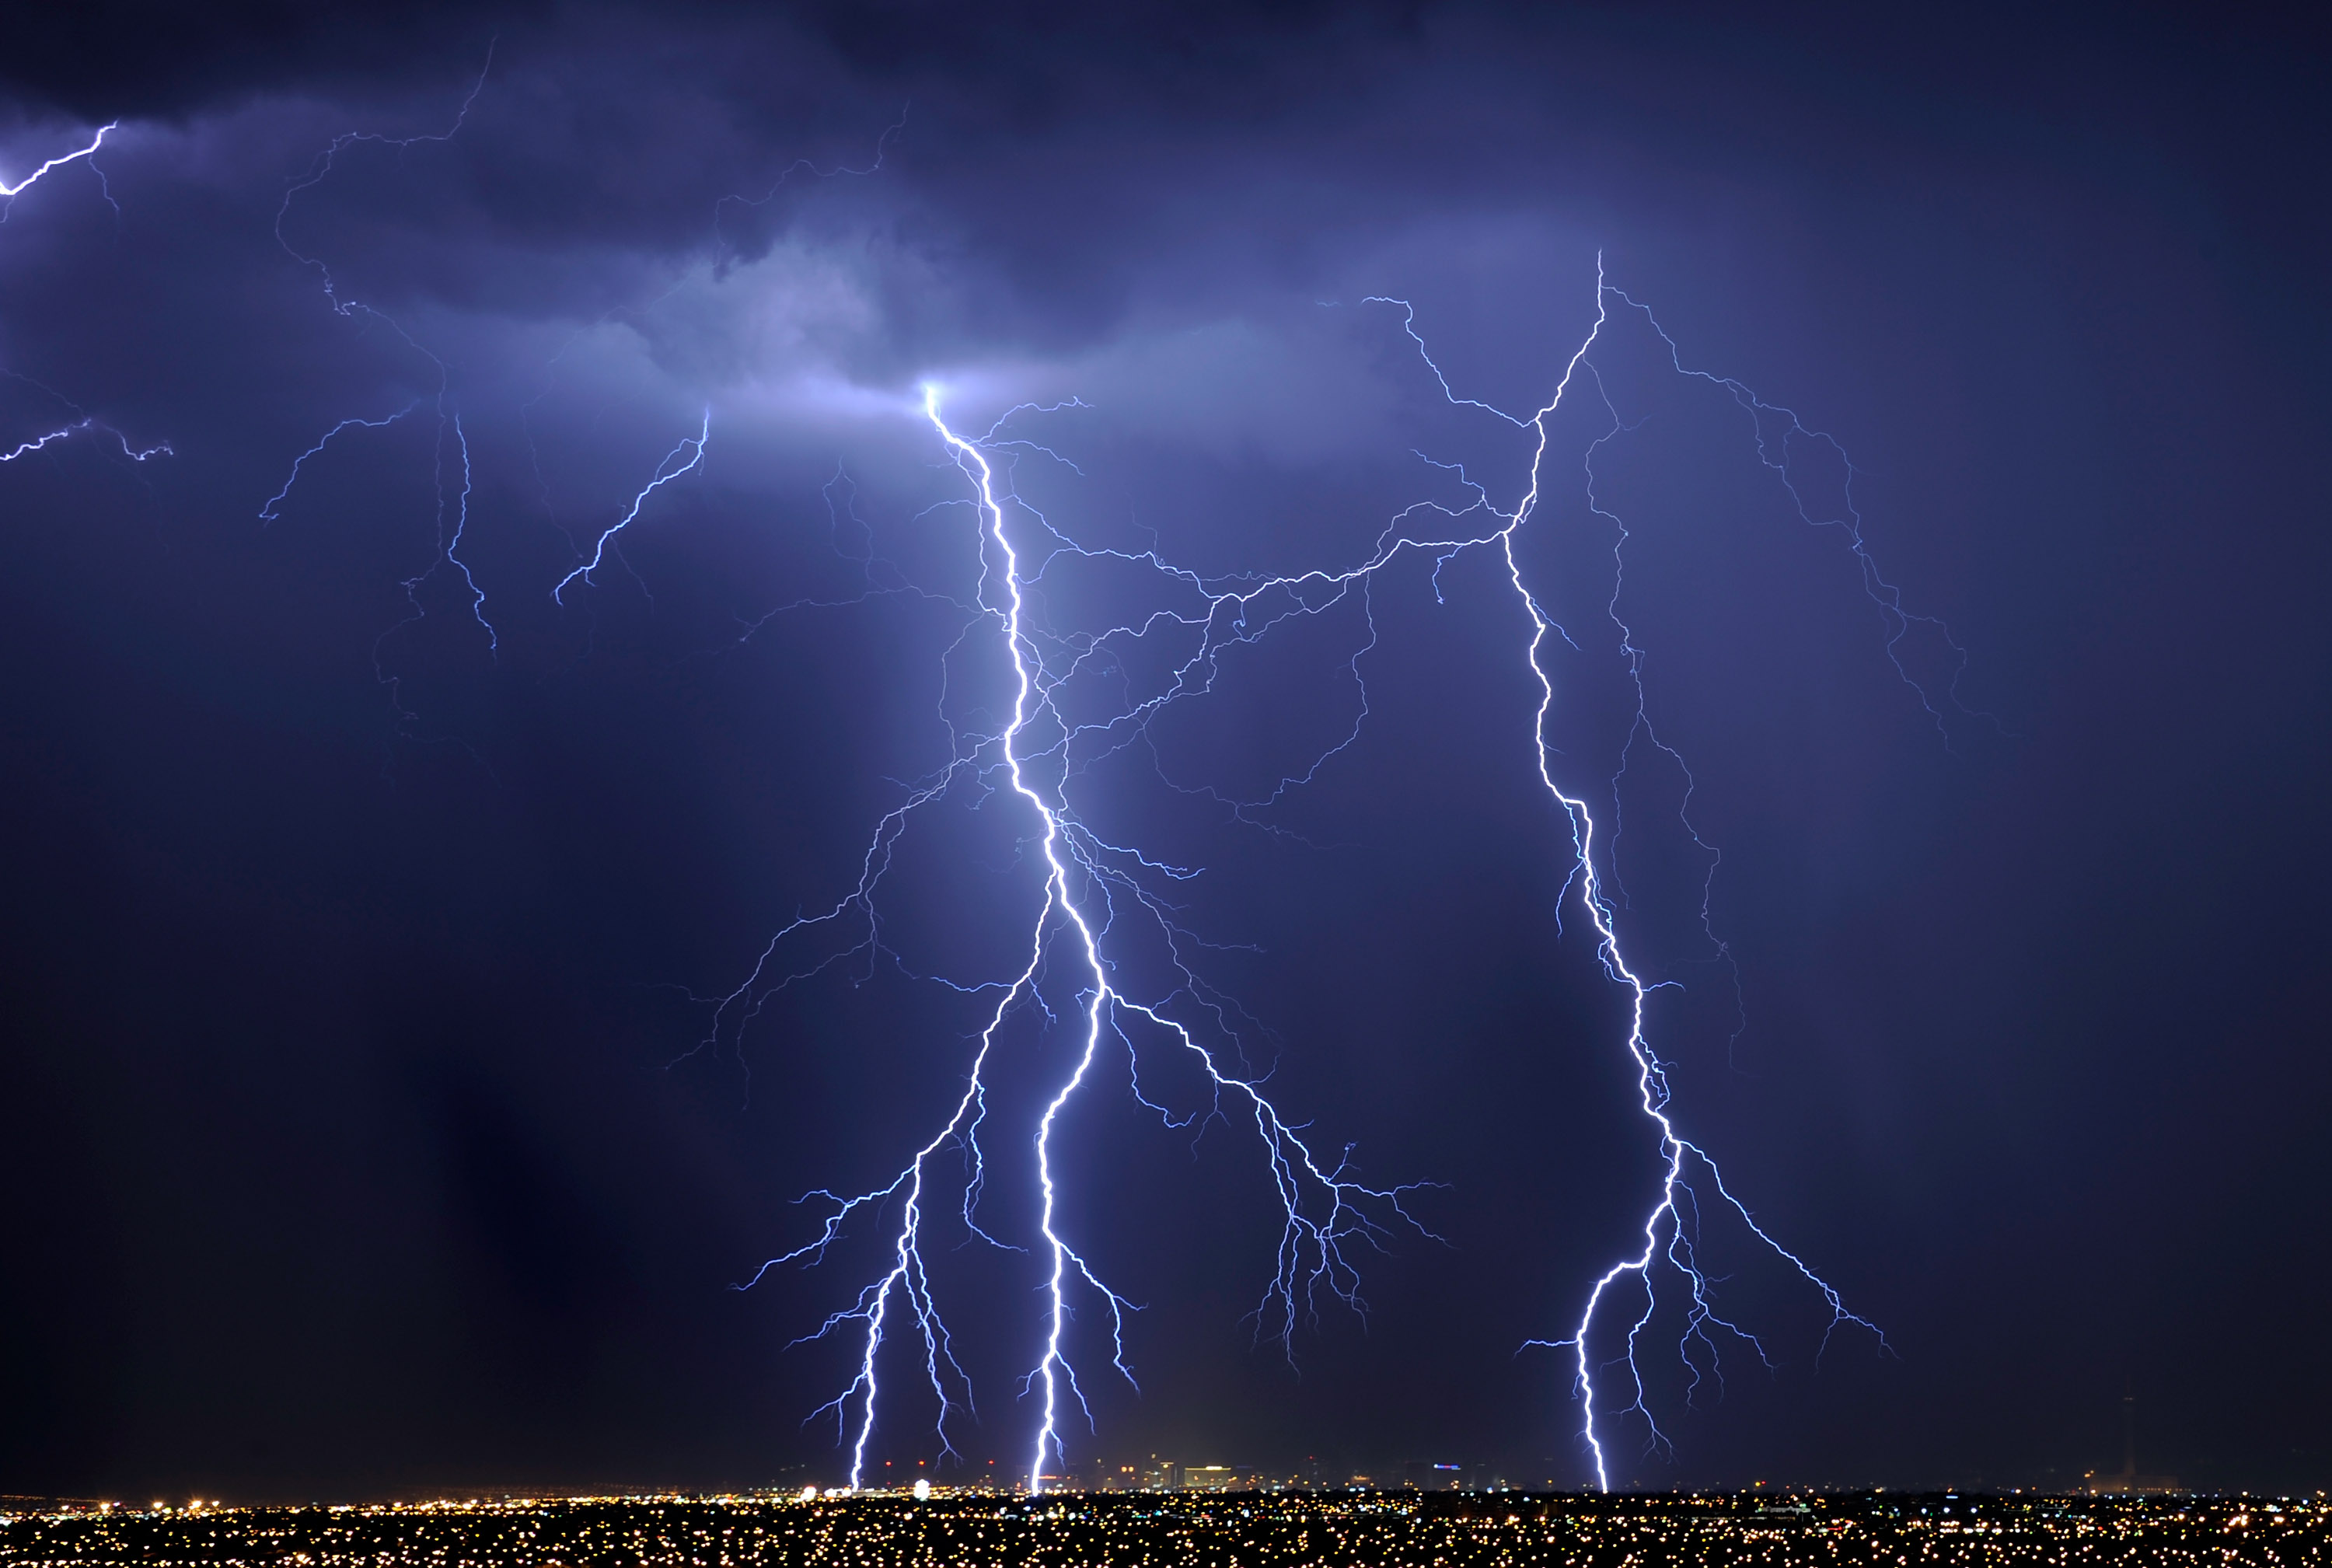 Tips to stay safe during a thunderstorm